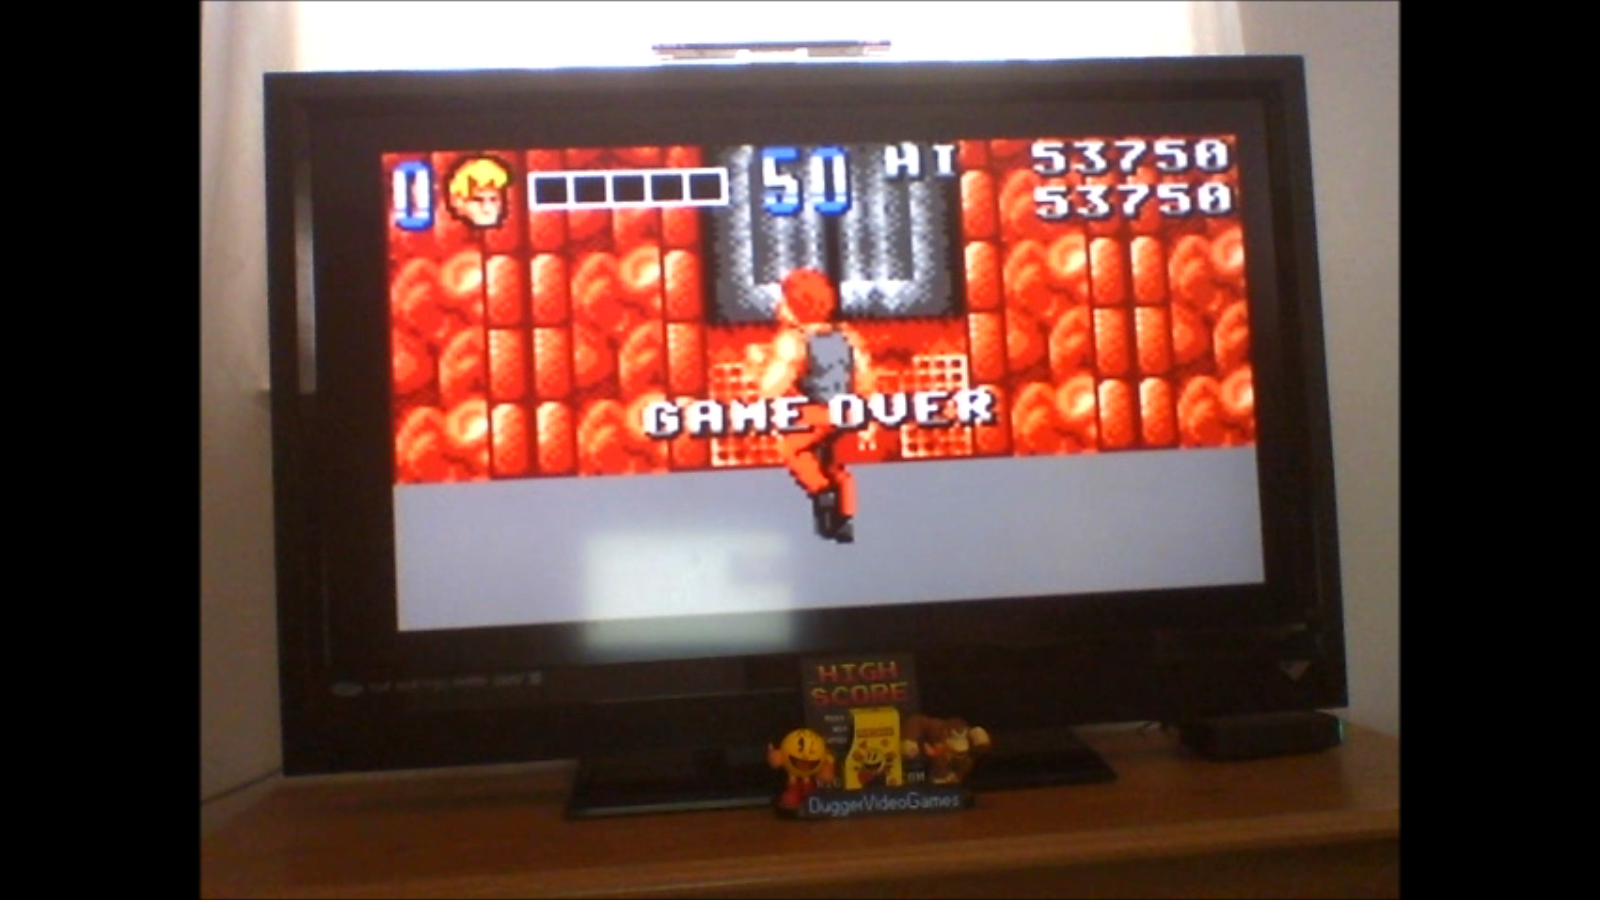 DuggerVideoGames: Double Dragon [Easy/Normal] (Atari Lynx Emulated) 53,750 points on 2017-02-07 13:04:43